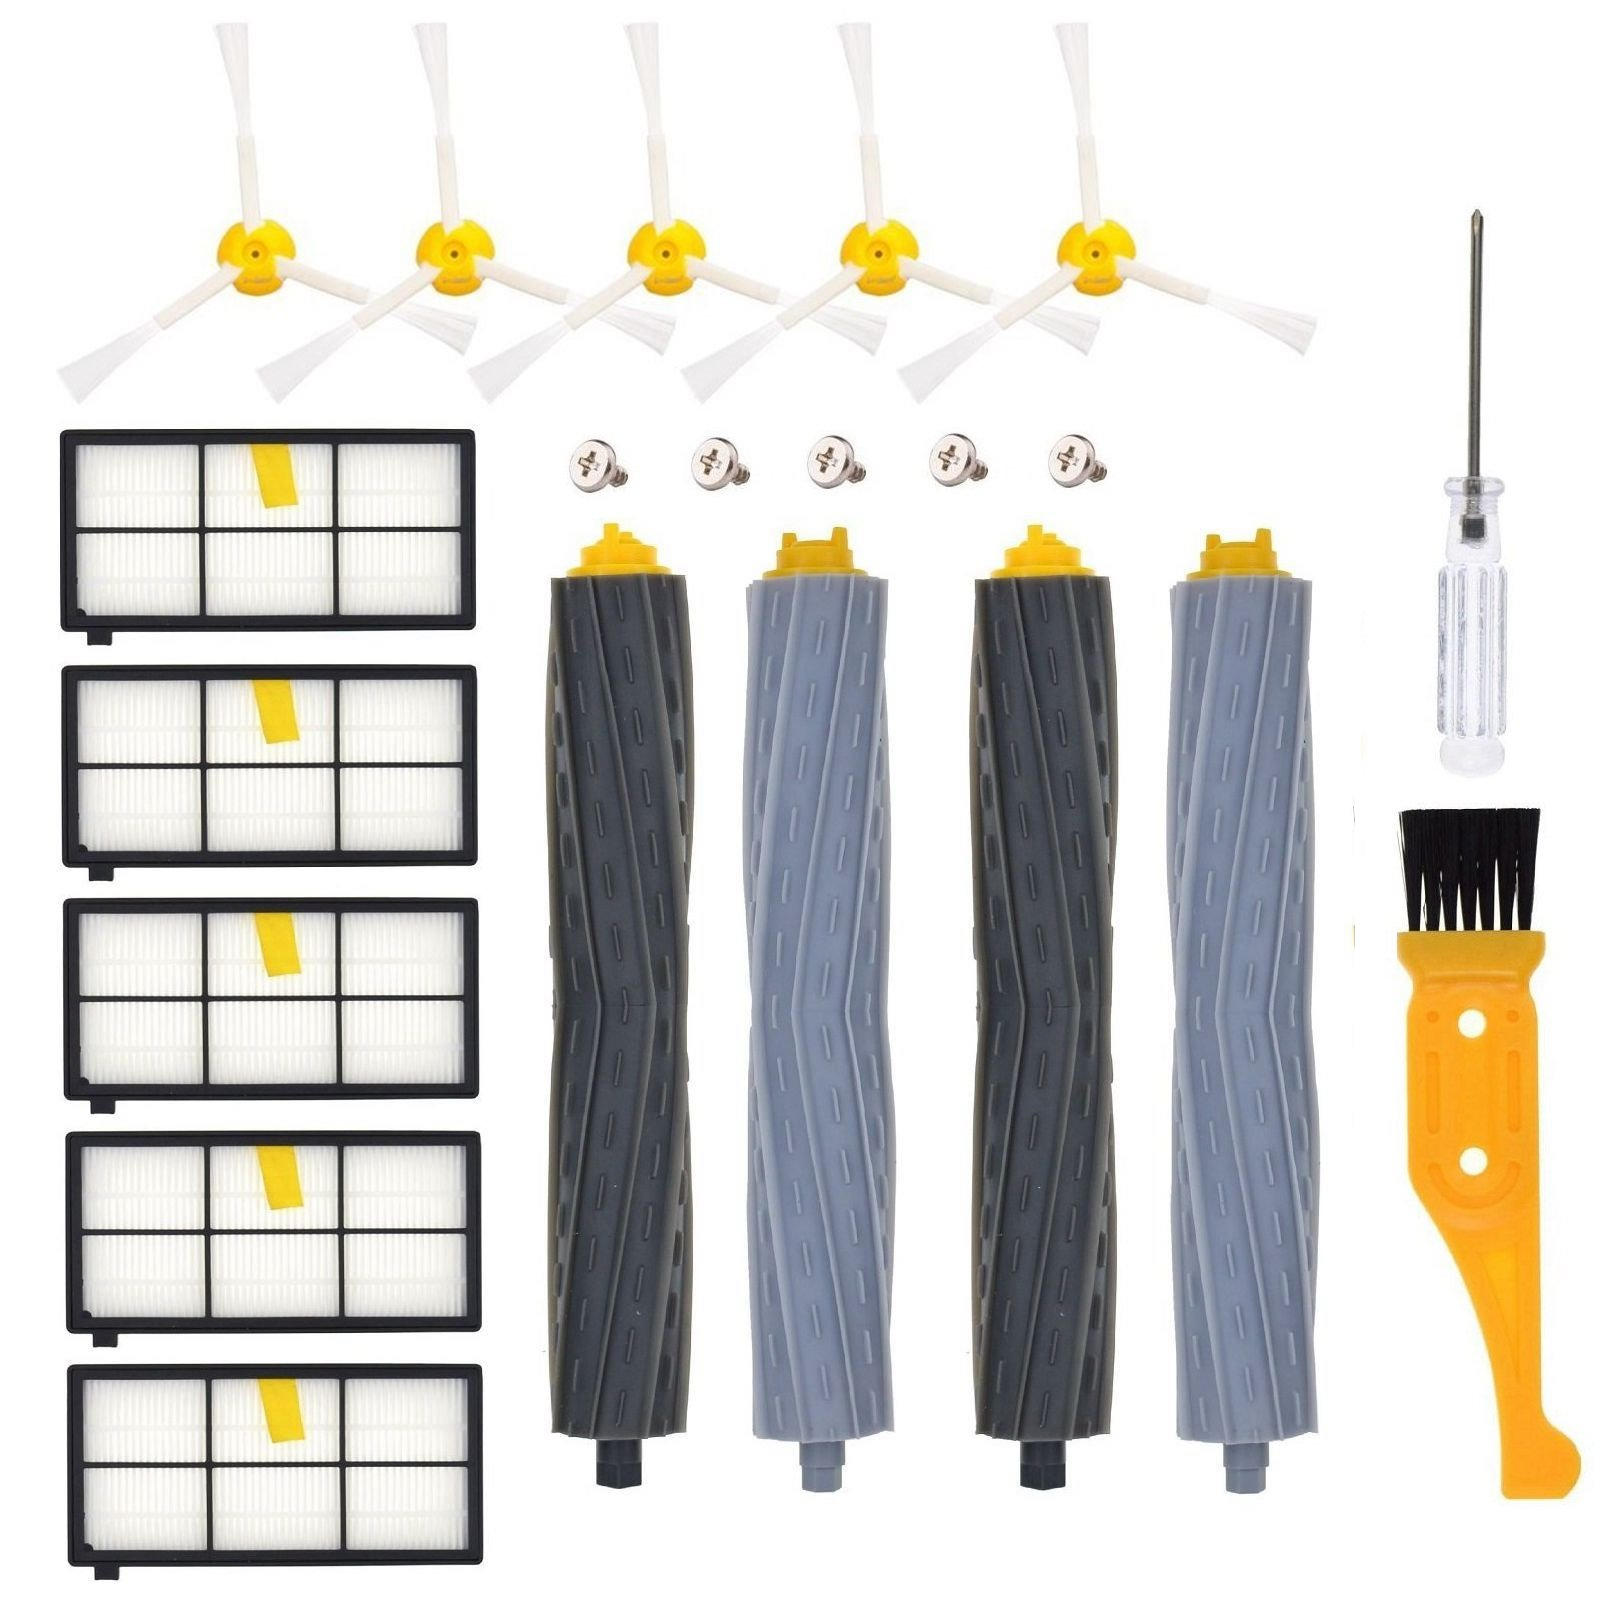 DerBlue Replacement Parts for iRobot Roomba 860 880 805 860 980 960 Vacuums, with 5 Pcs Hepa Filter, 5 Pcs 3-ArmedSide Brush, 2 Set Tangle-Free Debris Rollers,1 Small Brush, 1 Screwdriver by DerBlue